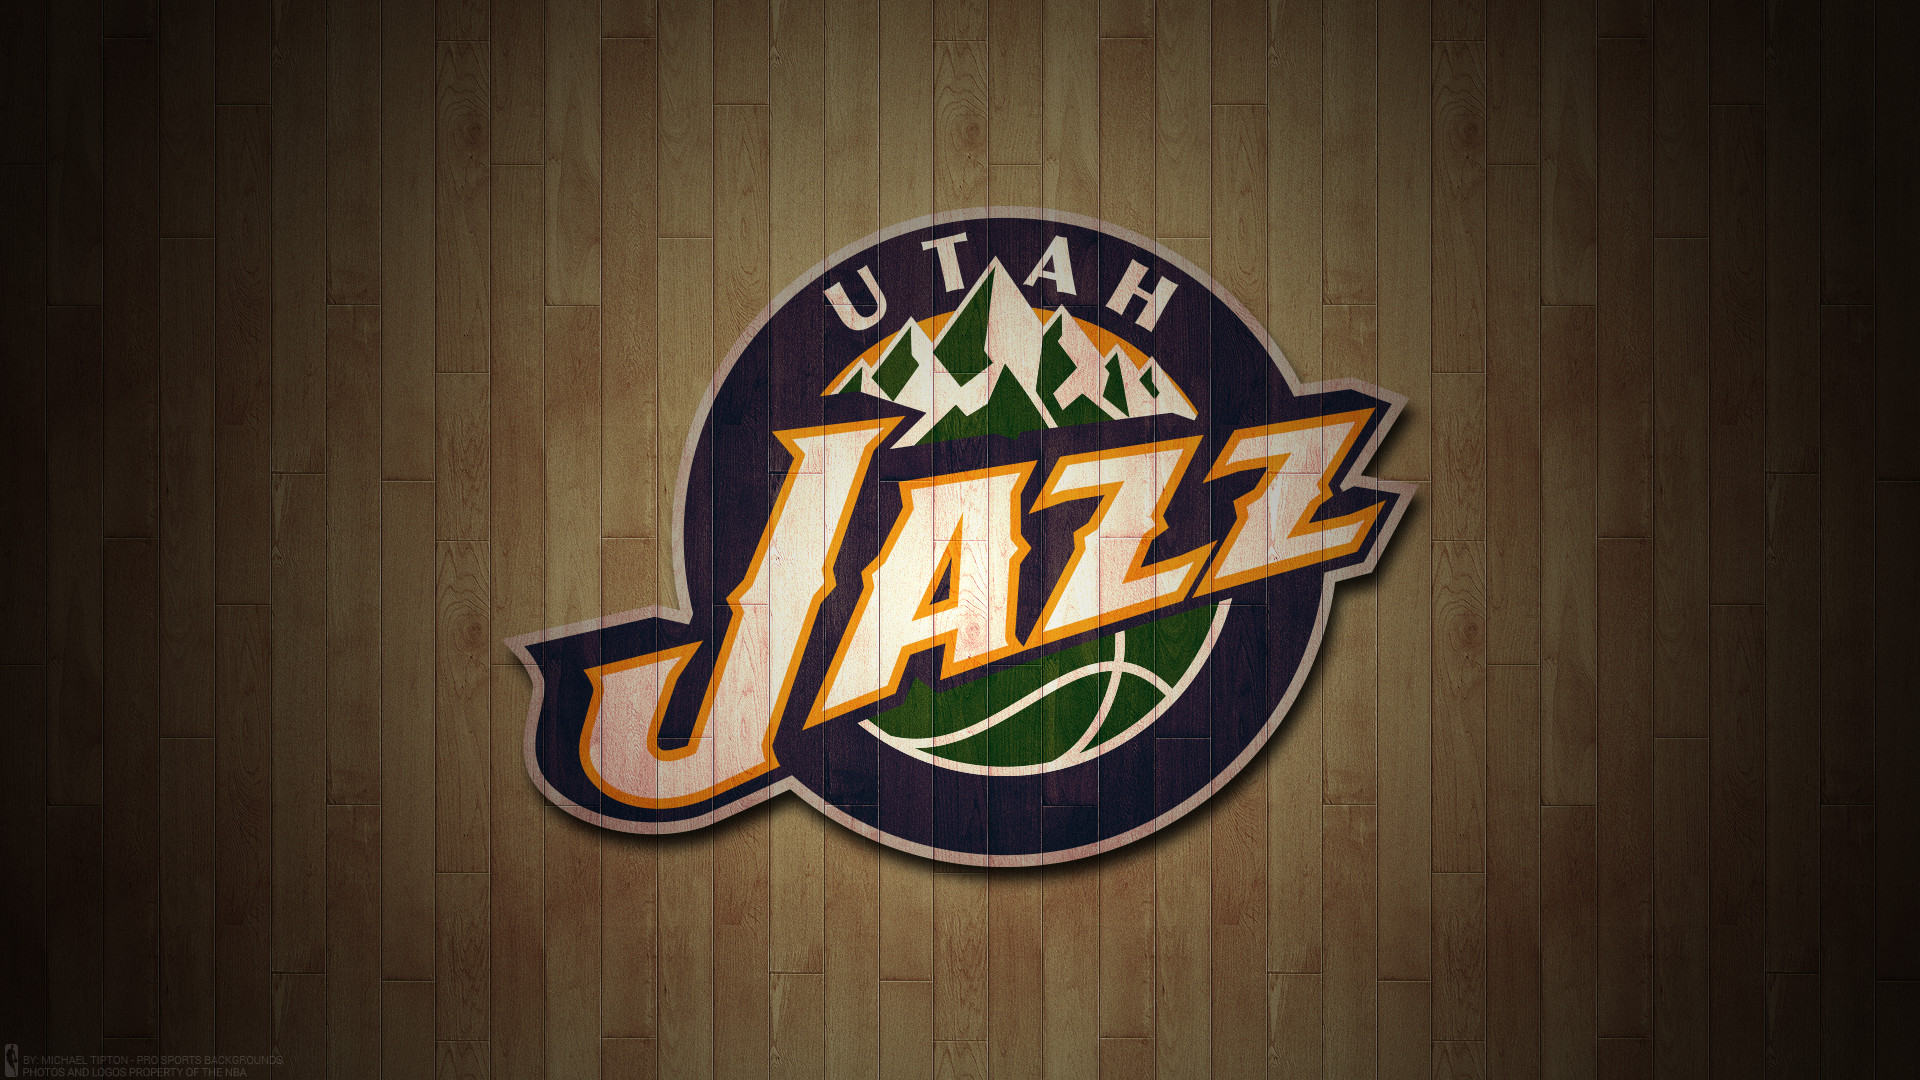 1920x1080 Utah Jazz 2017 nba basketball team logo hardwood wallpaper free for mac and desktop pc